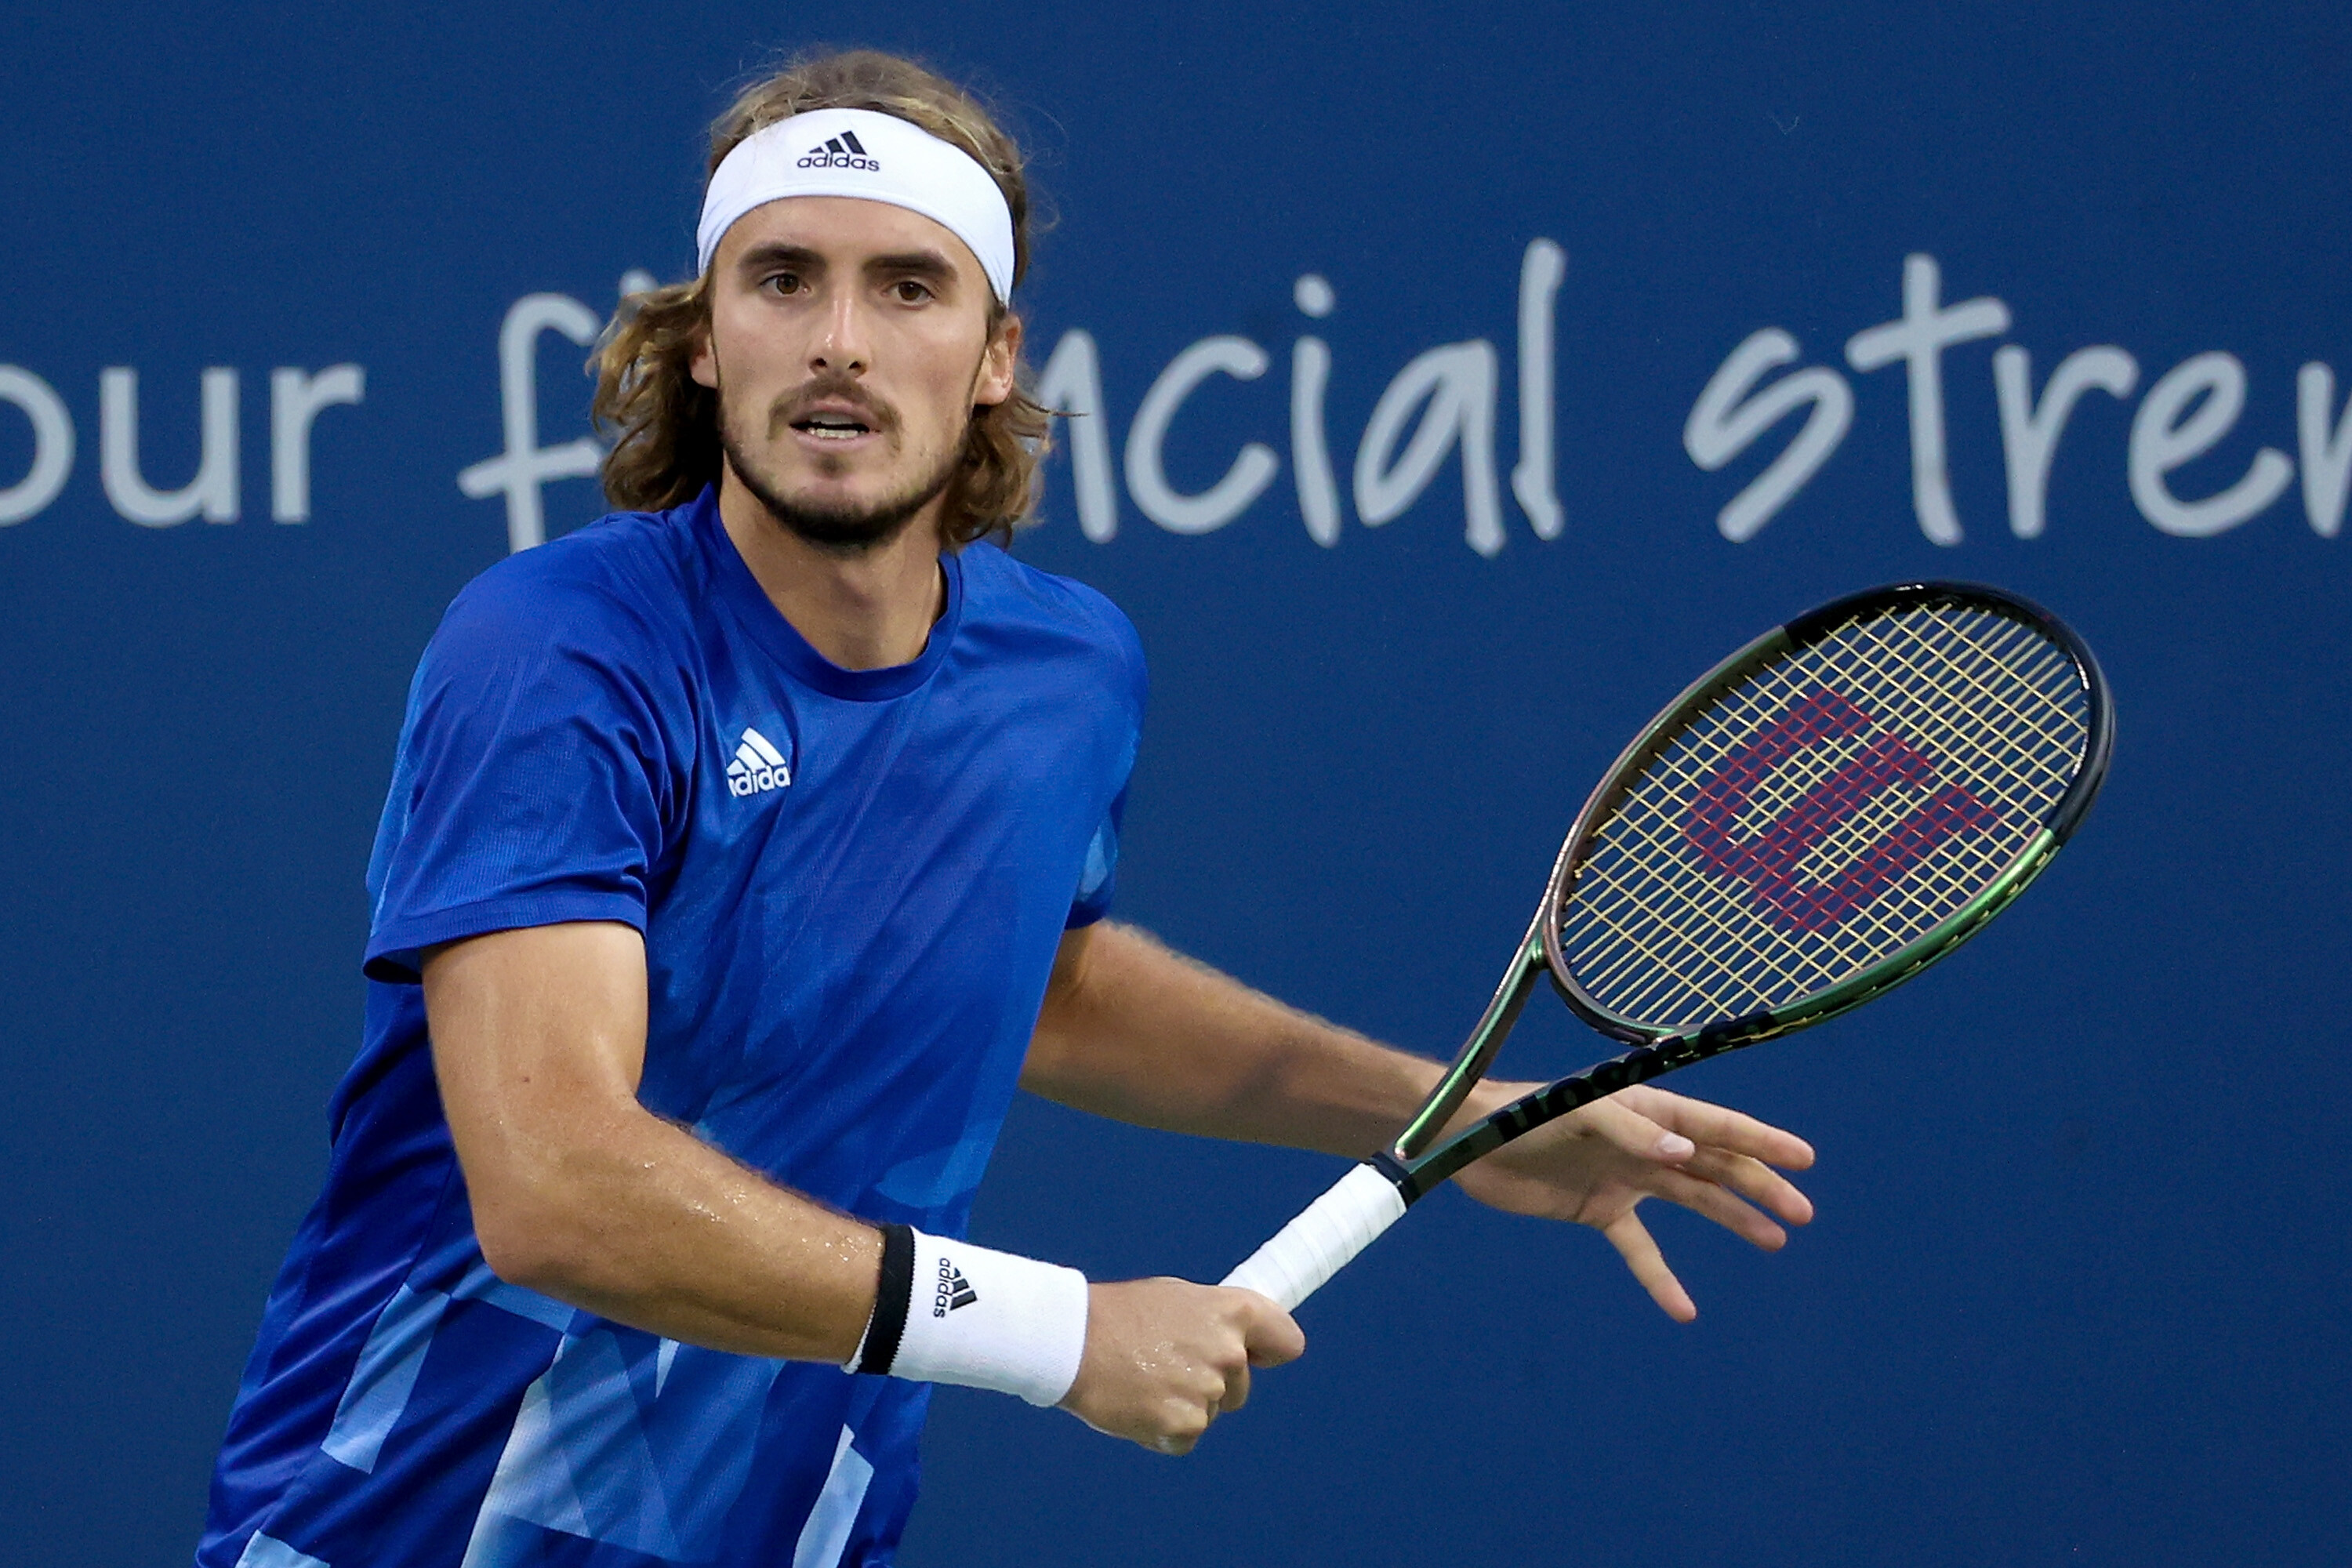 Tennis' governing bodies continue to urge players to get vaccinated ahead of US Open